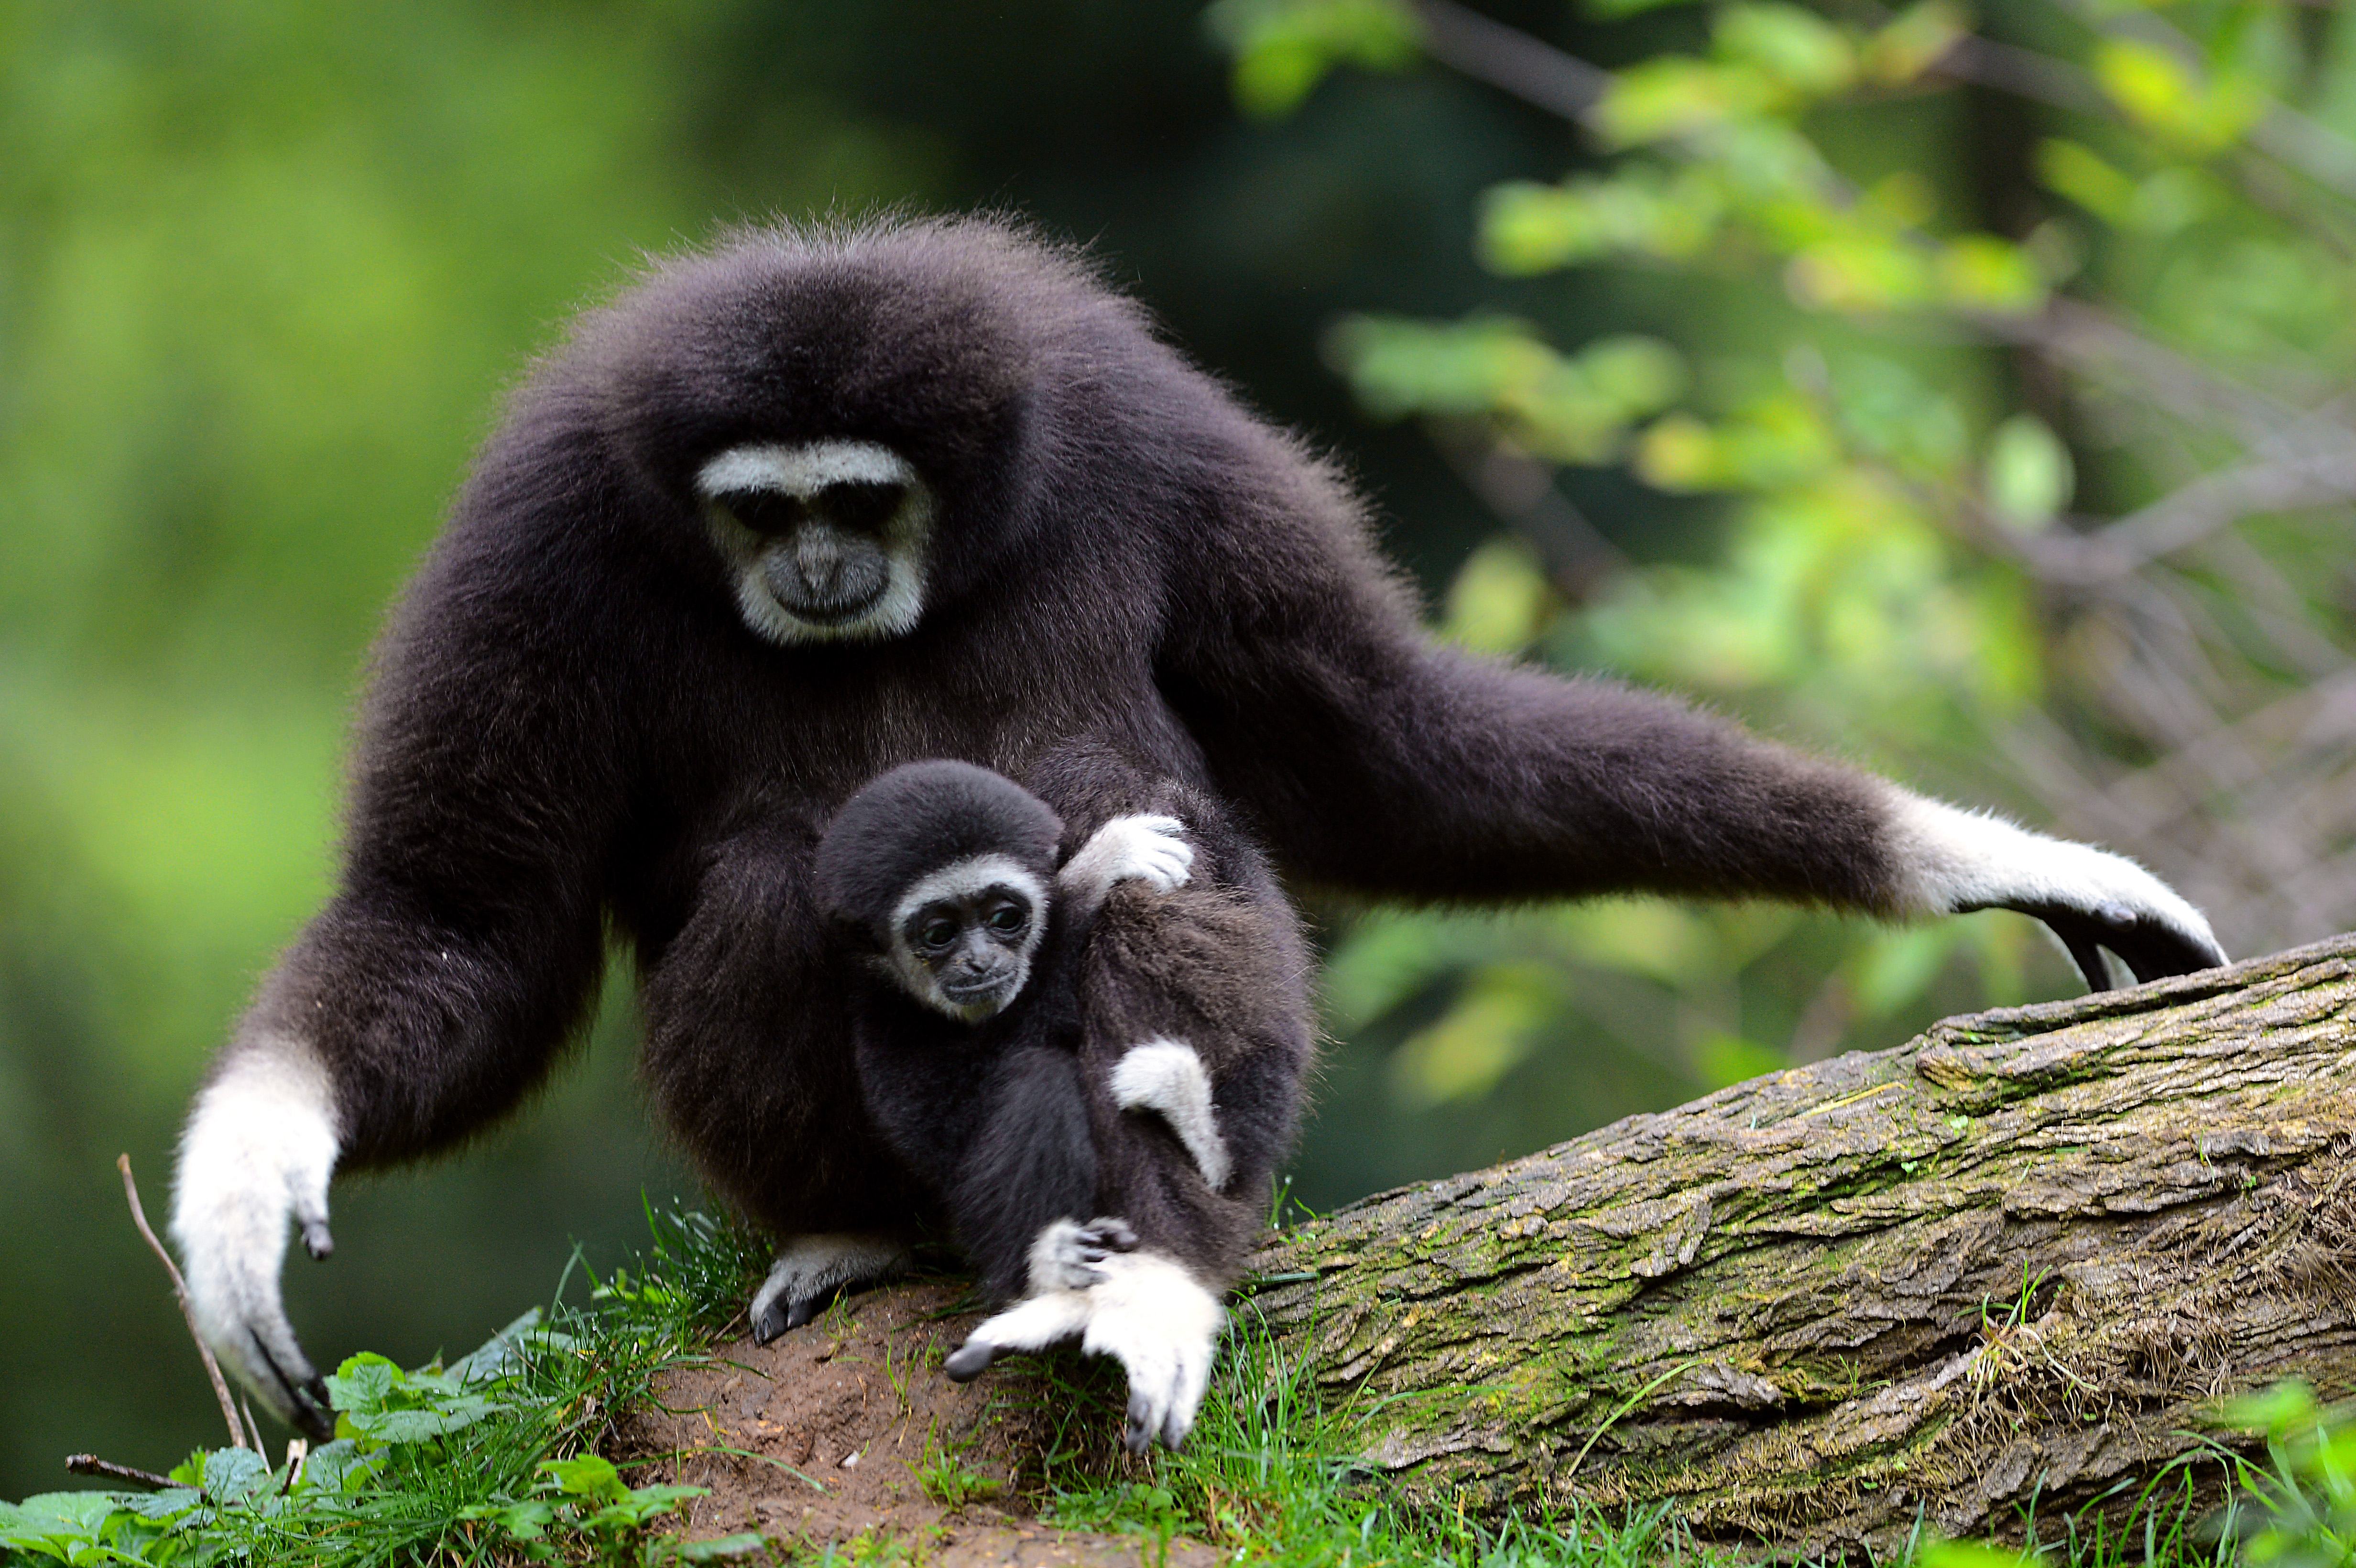 A baby Gibbon and its mother at the Doue La-Fontaine zoo in France on October 26, 2012.